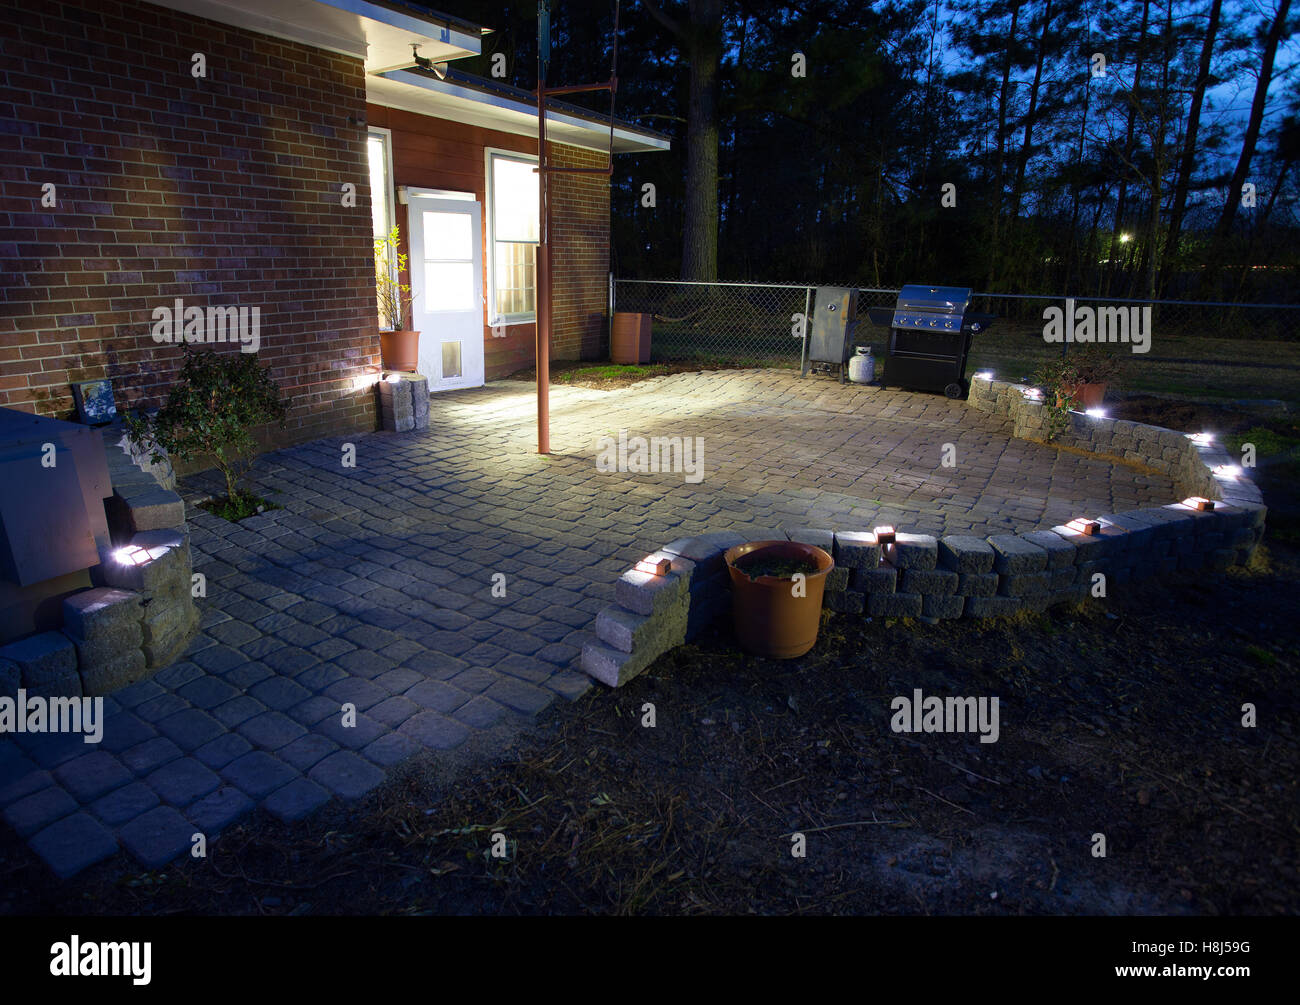 https www alamy com stock photo large patio with sand set bricks and solar lights in the night 125789148 html